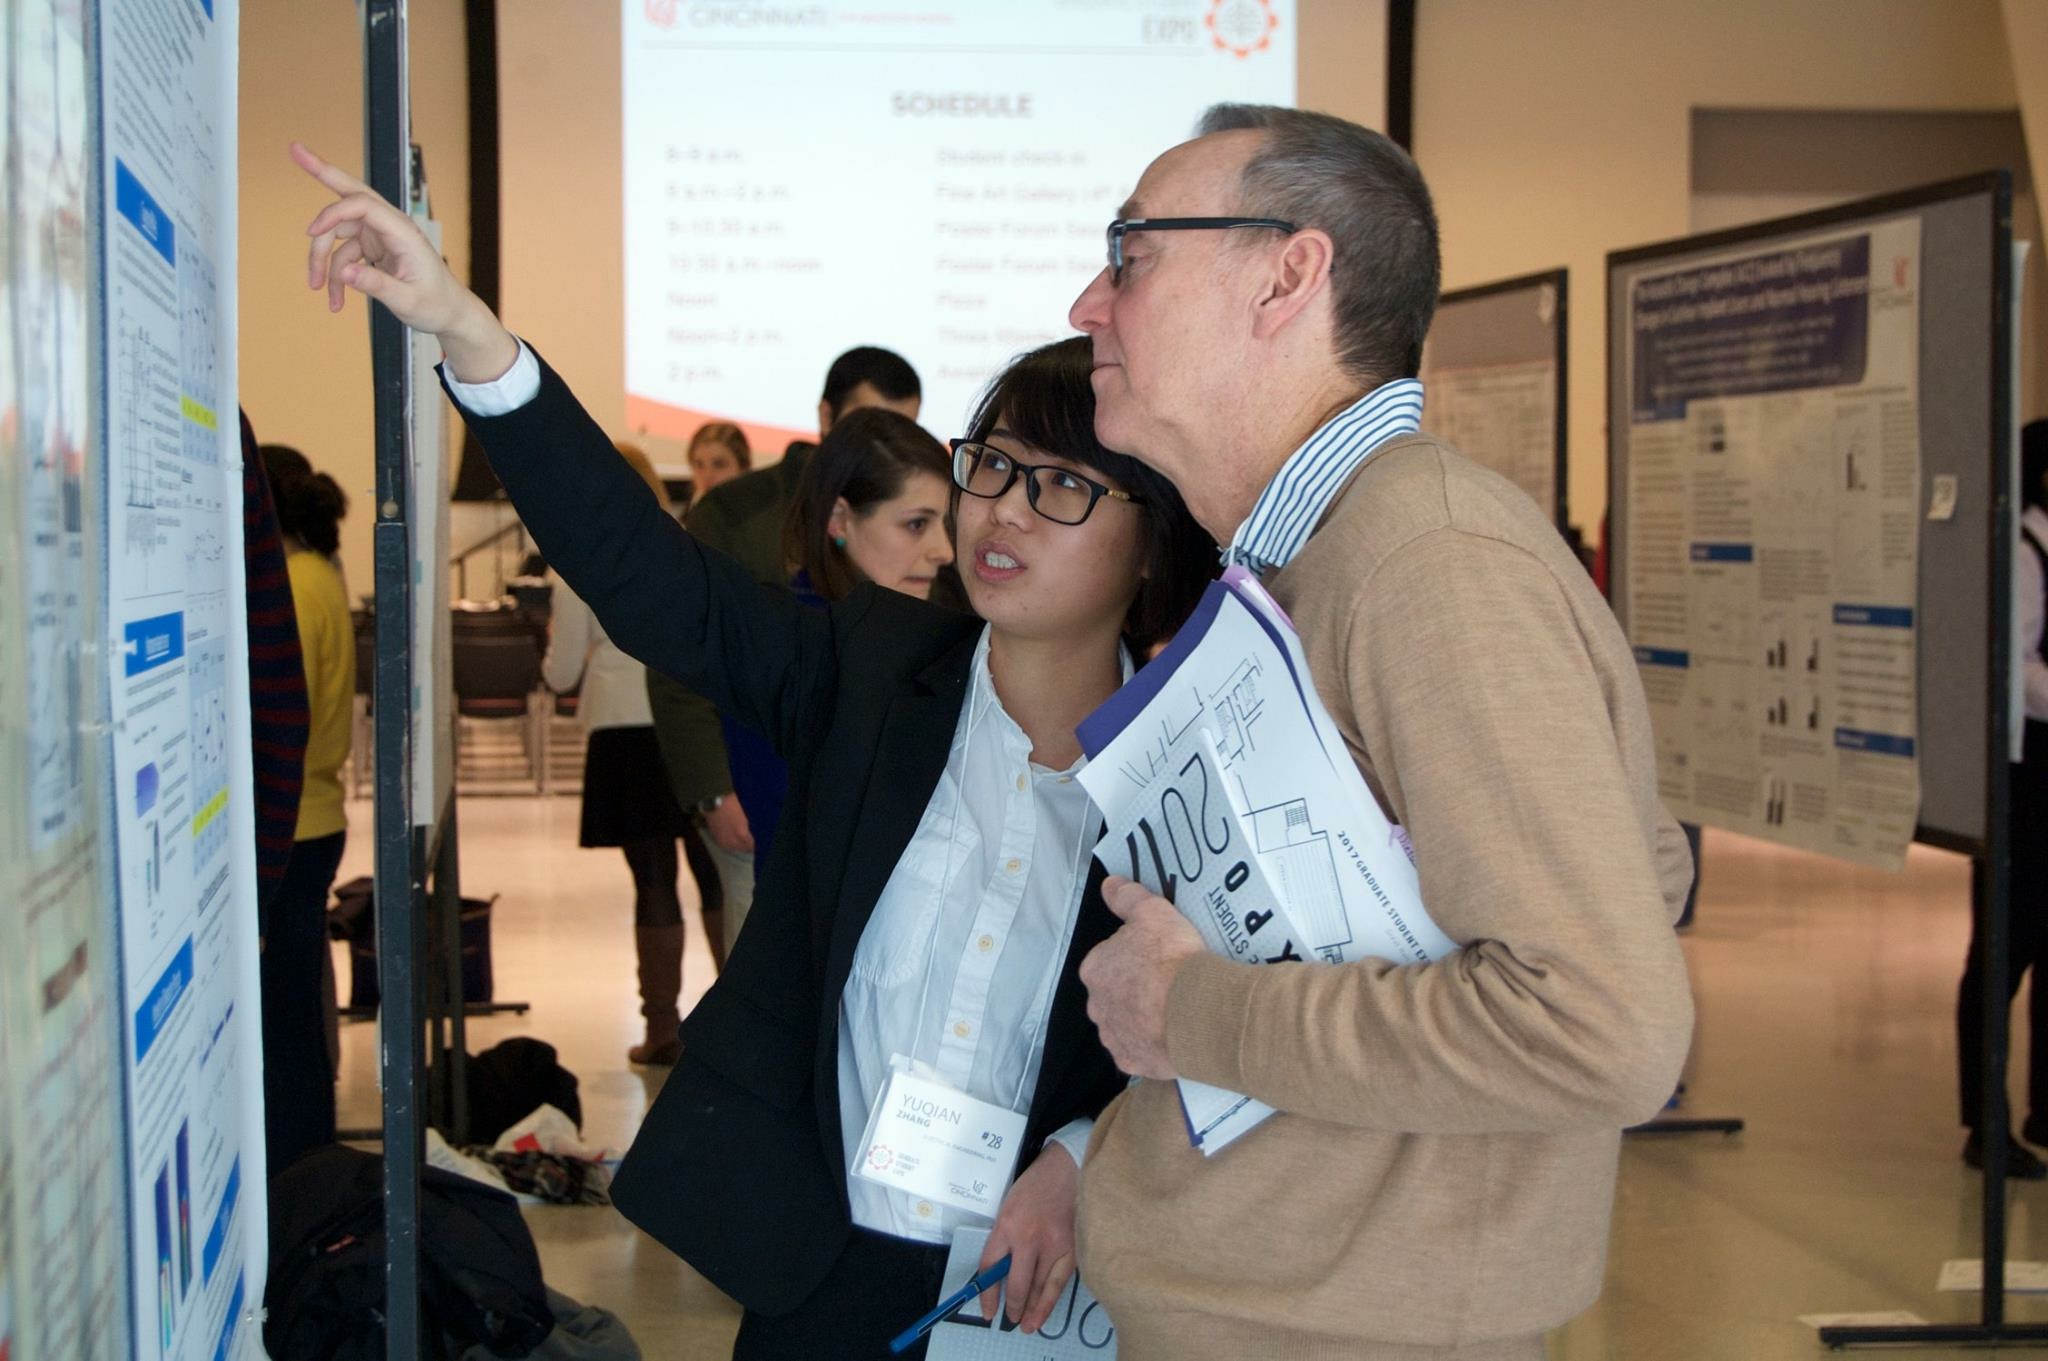 Yuqian presenting her work at Graduate Student Expo